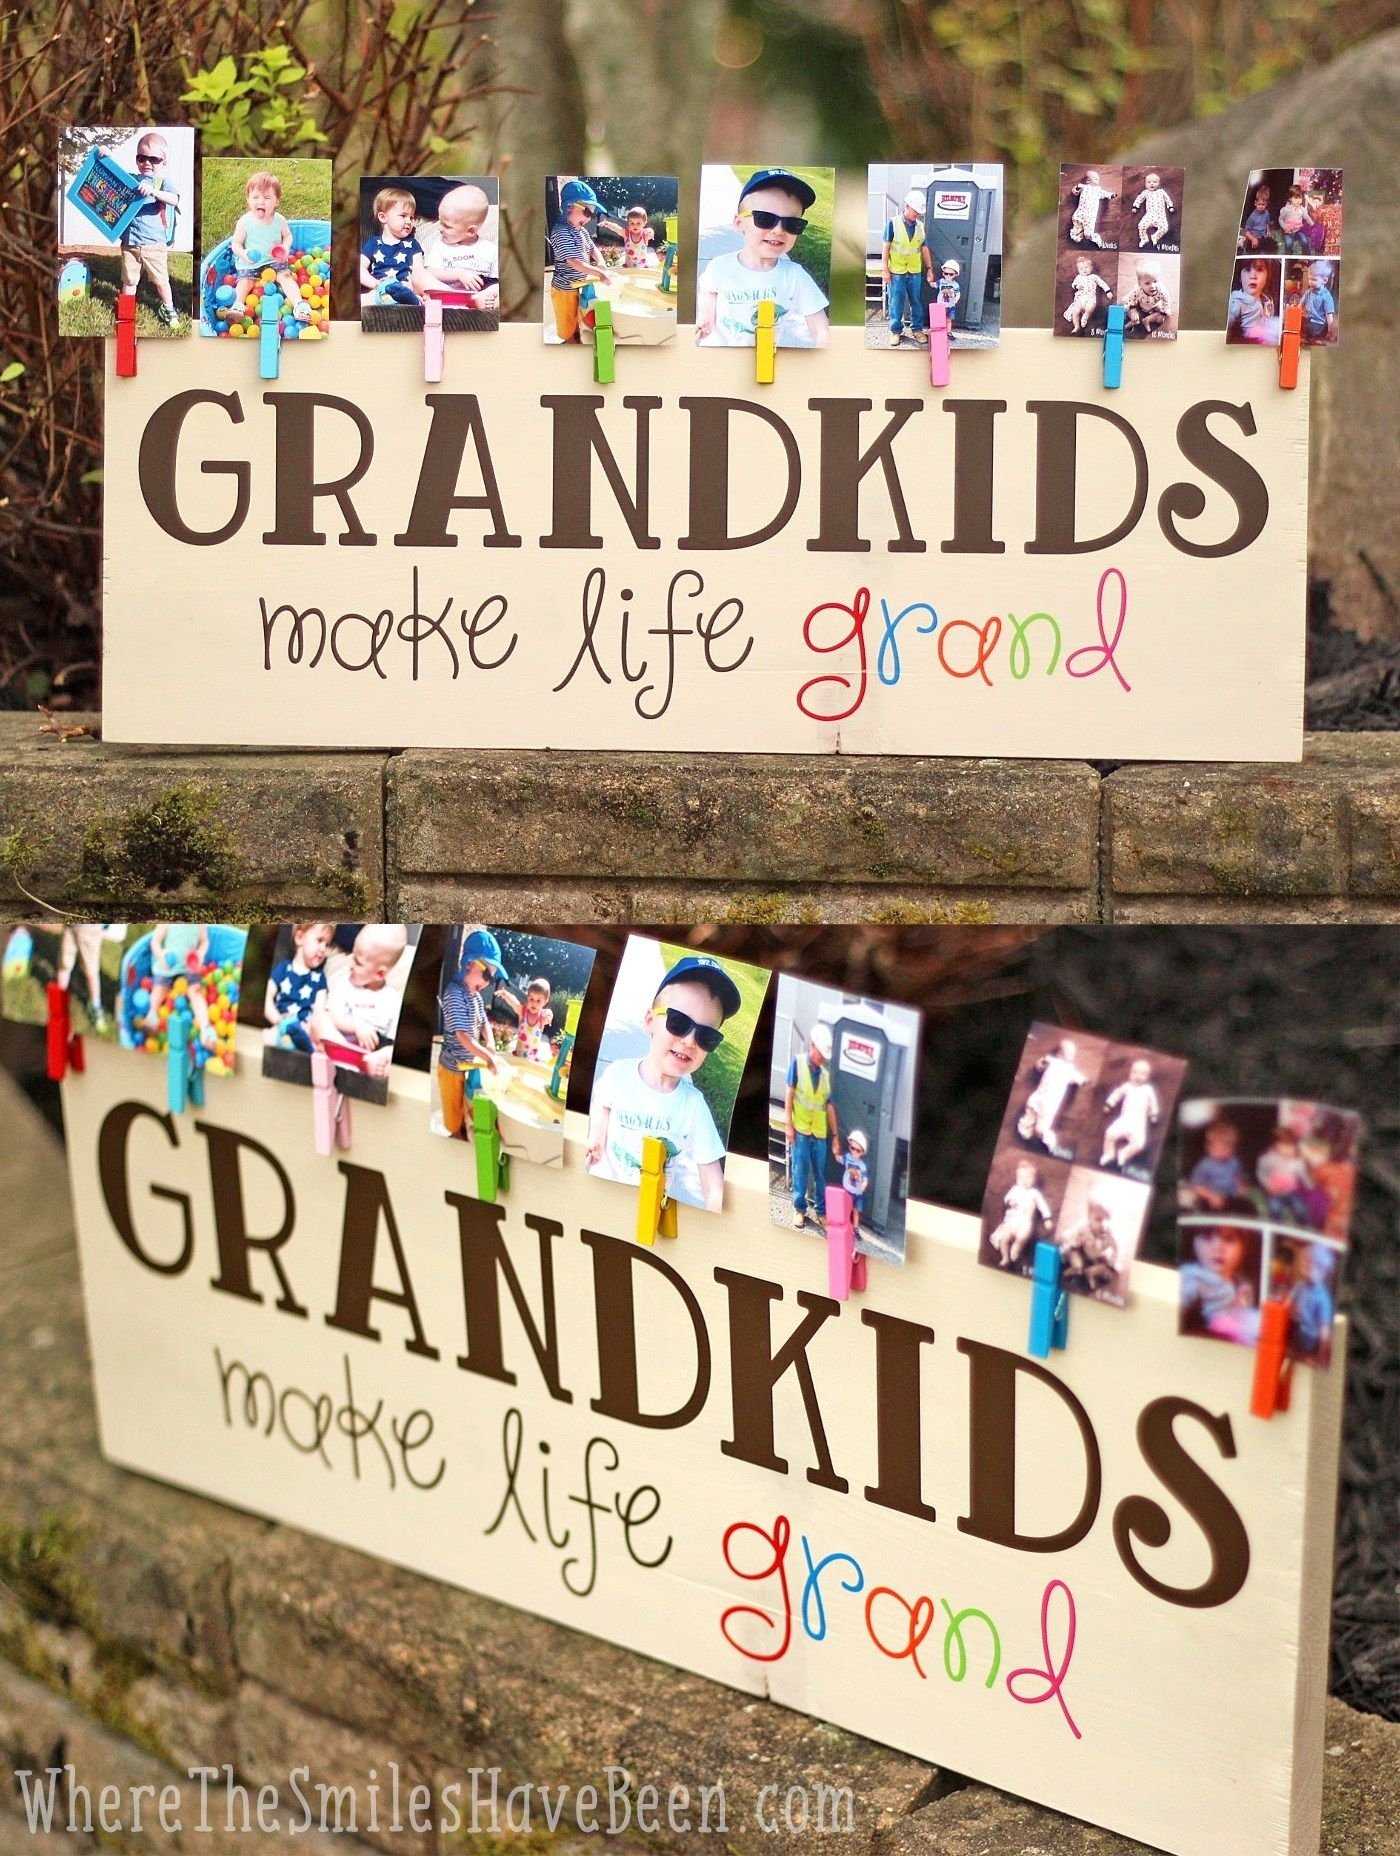 10 Most Recommended Holiday Gift Ideas For Grandparents colorful grandkids make life grand wood sign photo display 2 2021